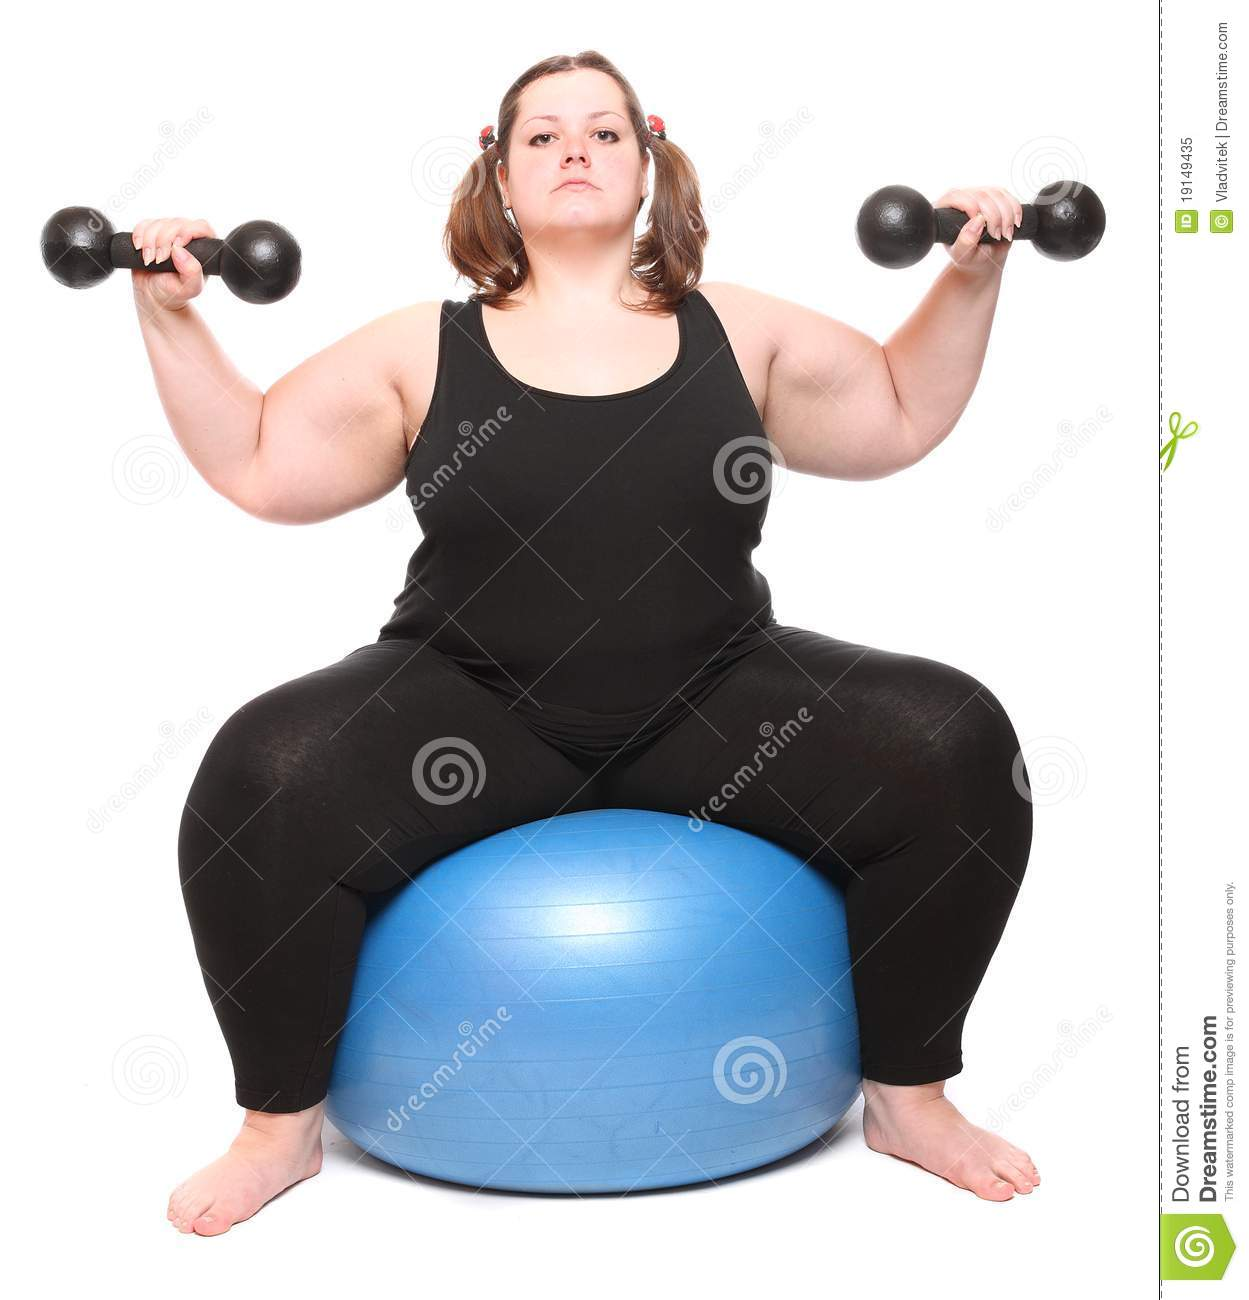 free picture of muscle women fucking